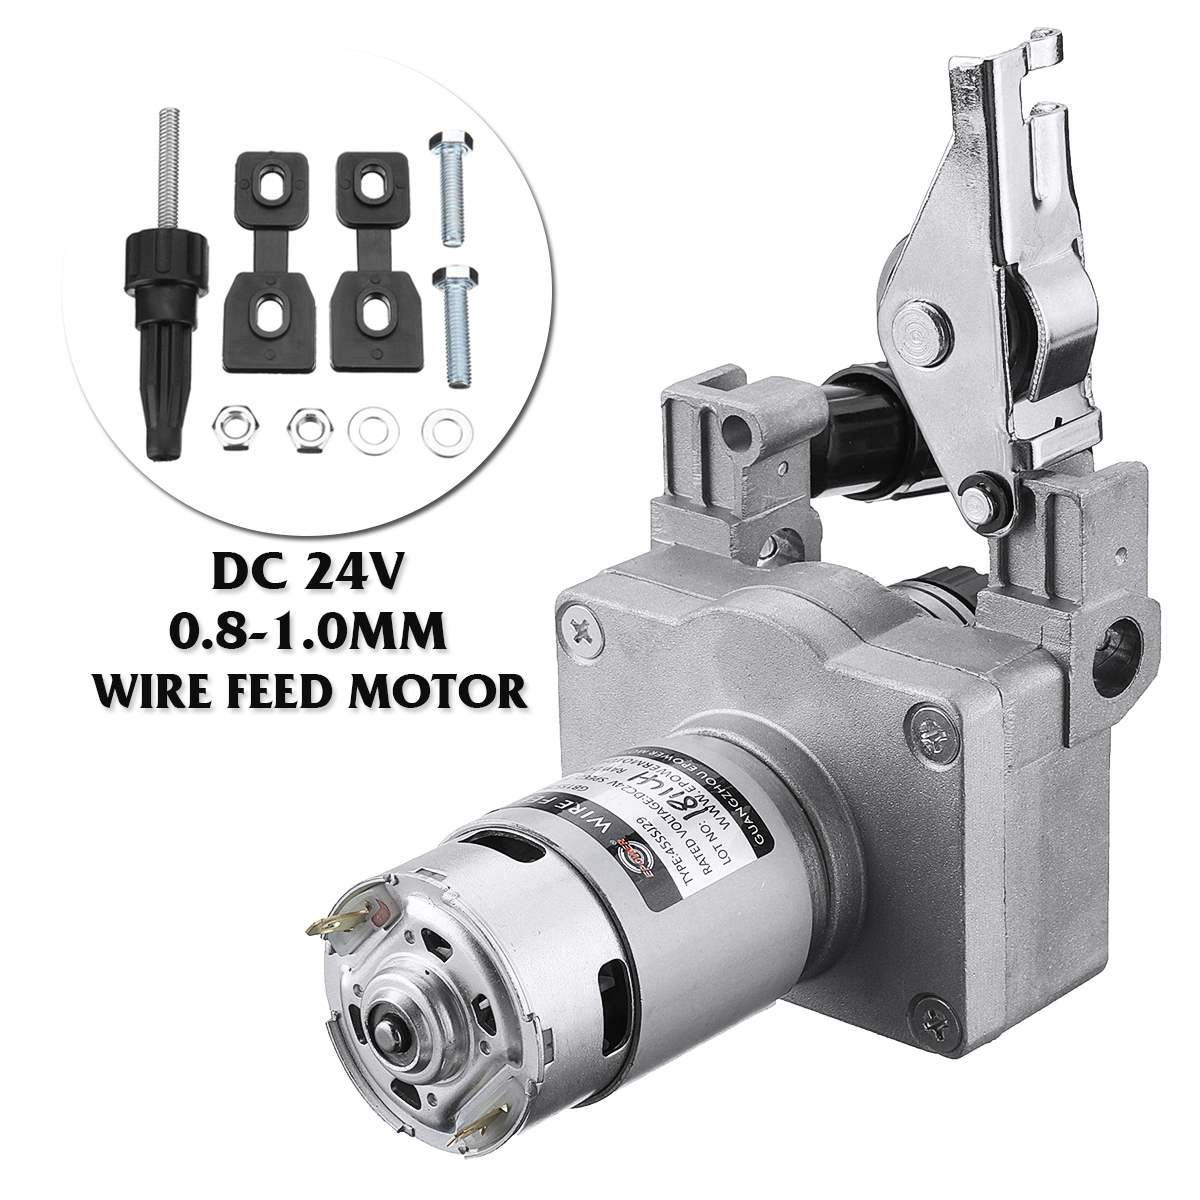 0.8-1.0mm Welding Wire Feed Motor Assembly Feeder Set DC24V No Connector Wire Feeder0.8-1.0mm Welding Wire Feed Motor Assembly Feeder Set DC24V No Connector Wire Feeder